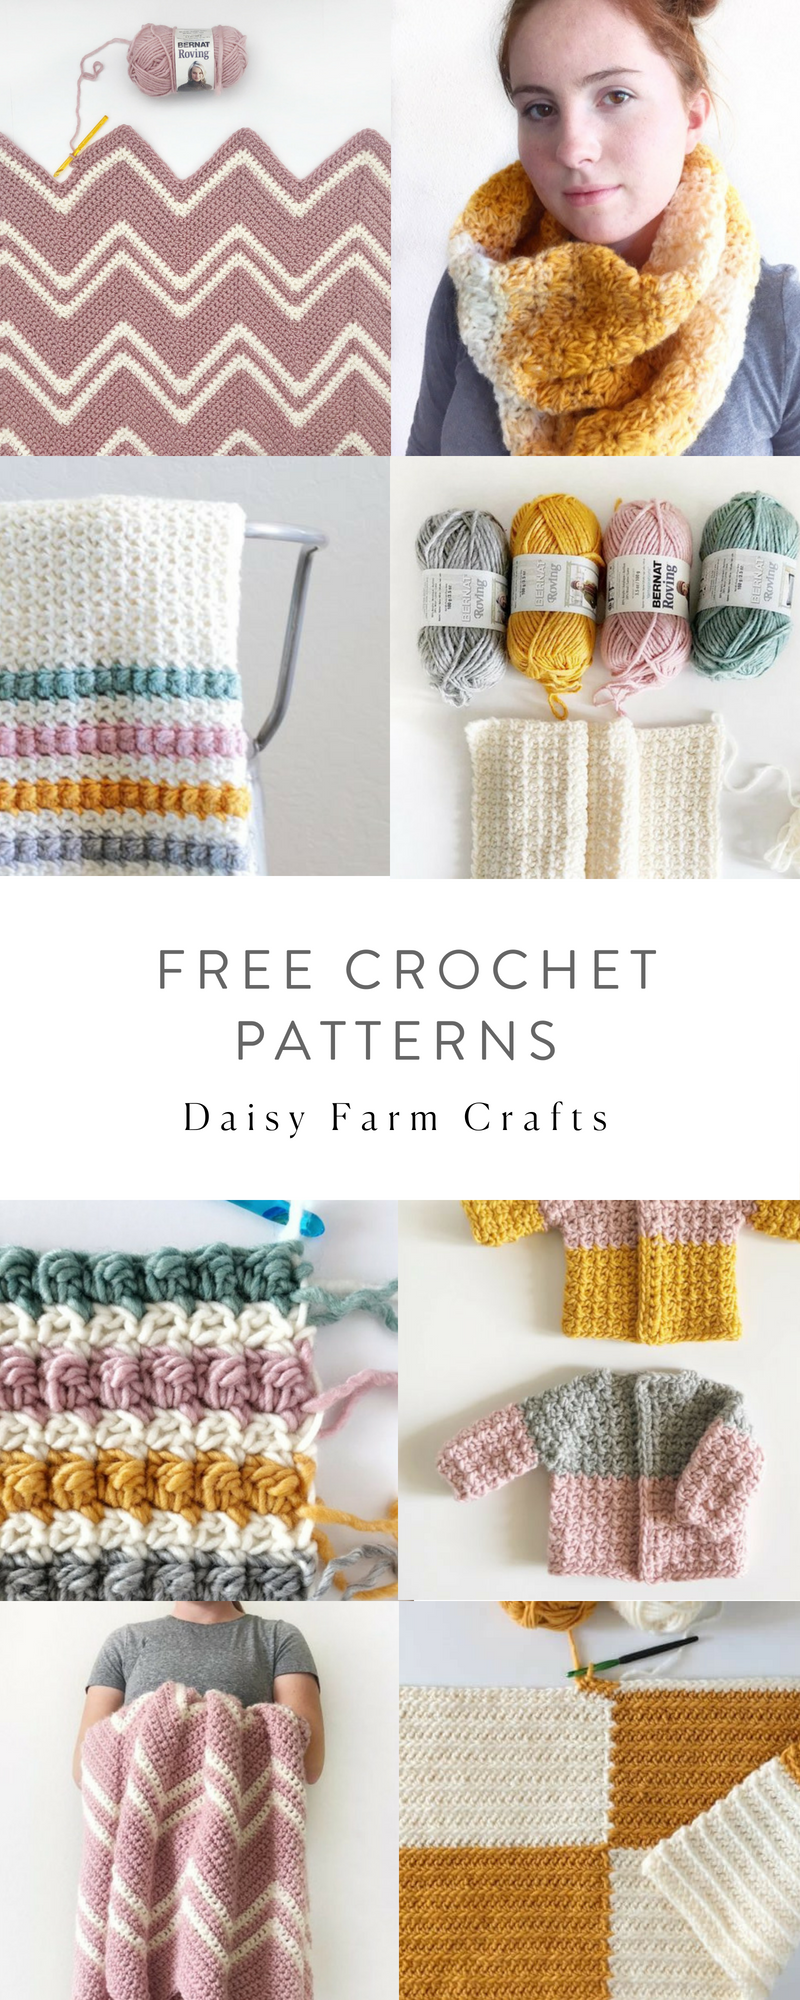 Free Crochet Patterns - Daisy Farm Crafts | Crochet > DaisyFarm ...